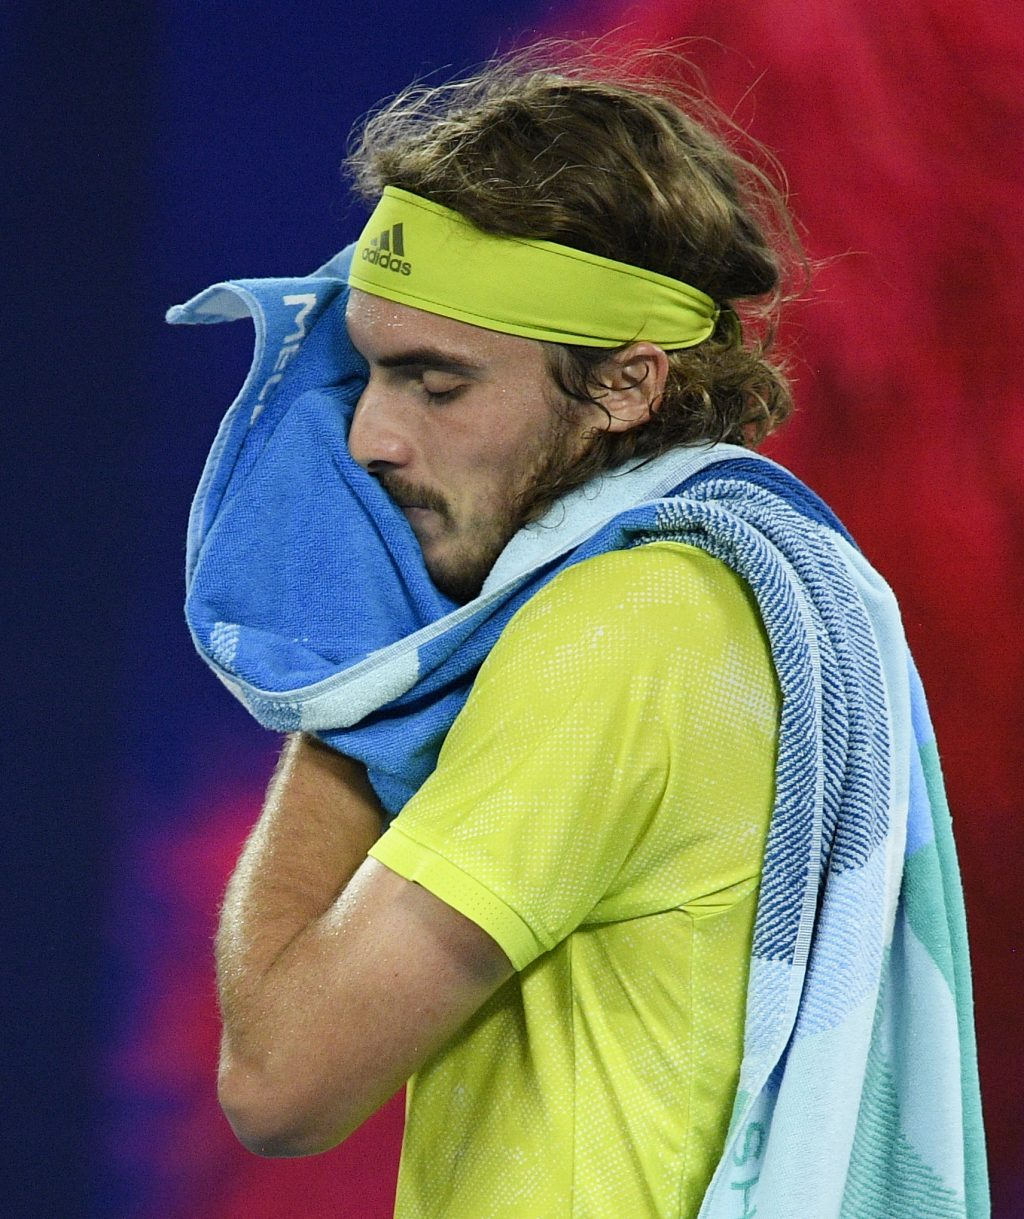 Stefanos Tsitsipas disappointed